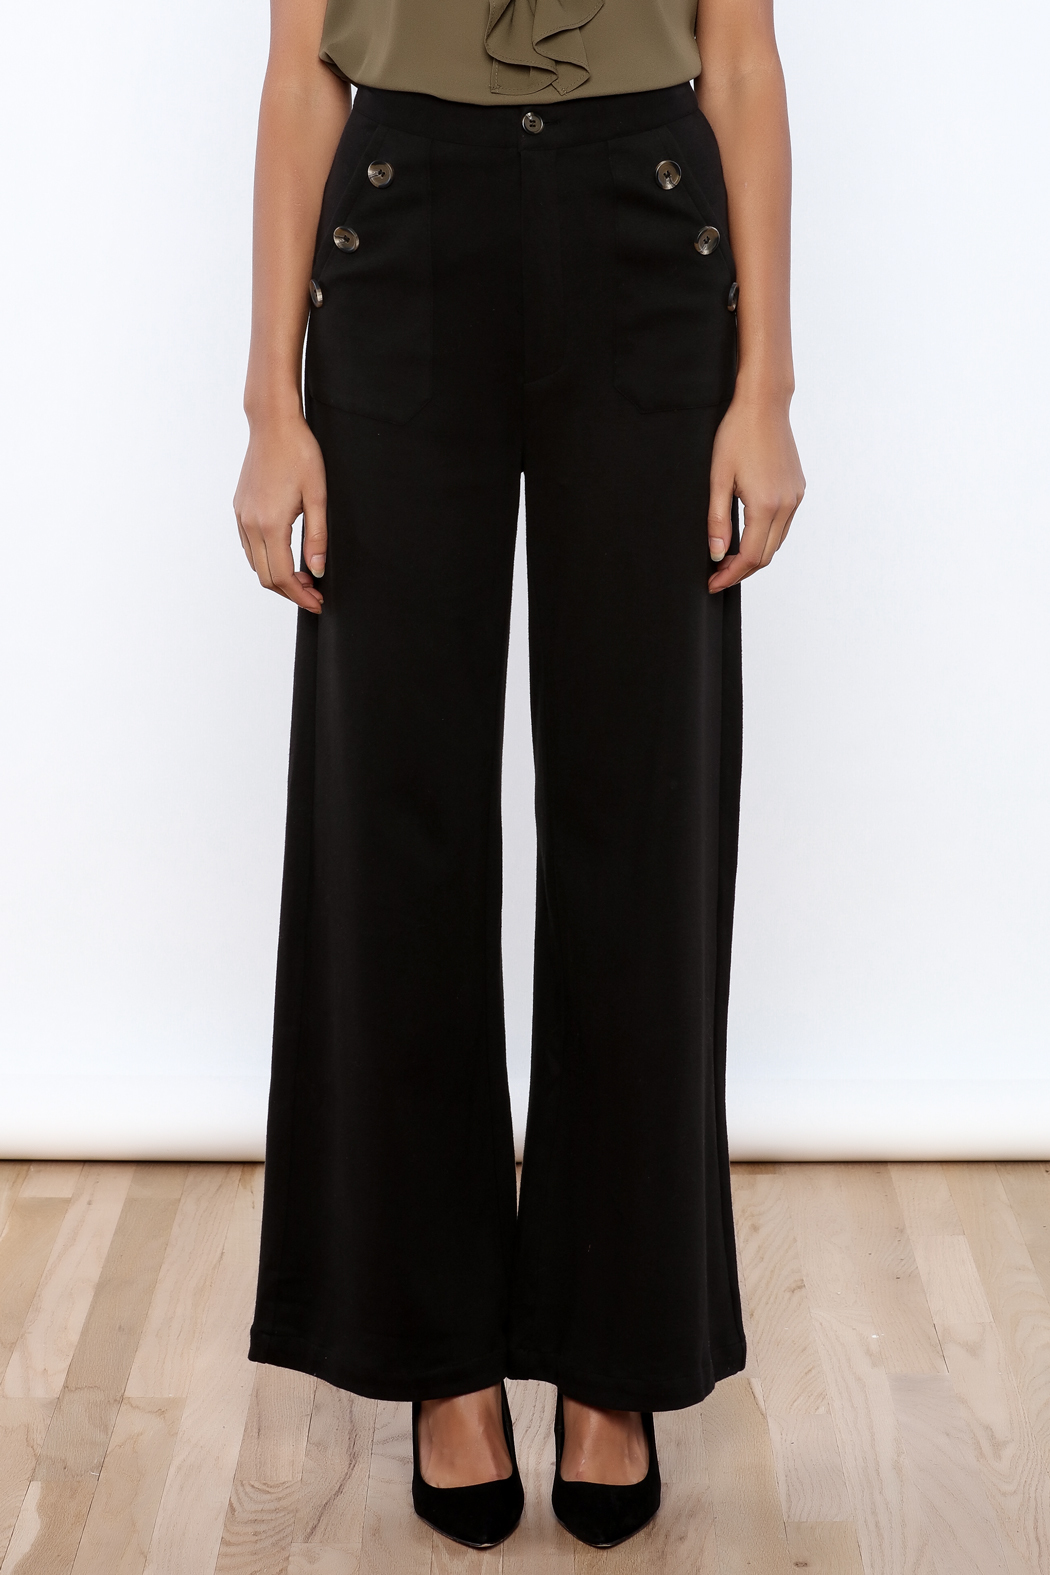 HYFVE High Waisted Pant - Side Cropped Image